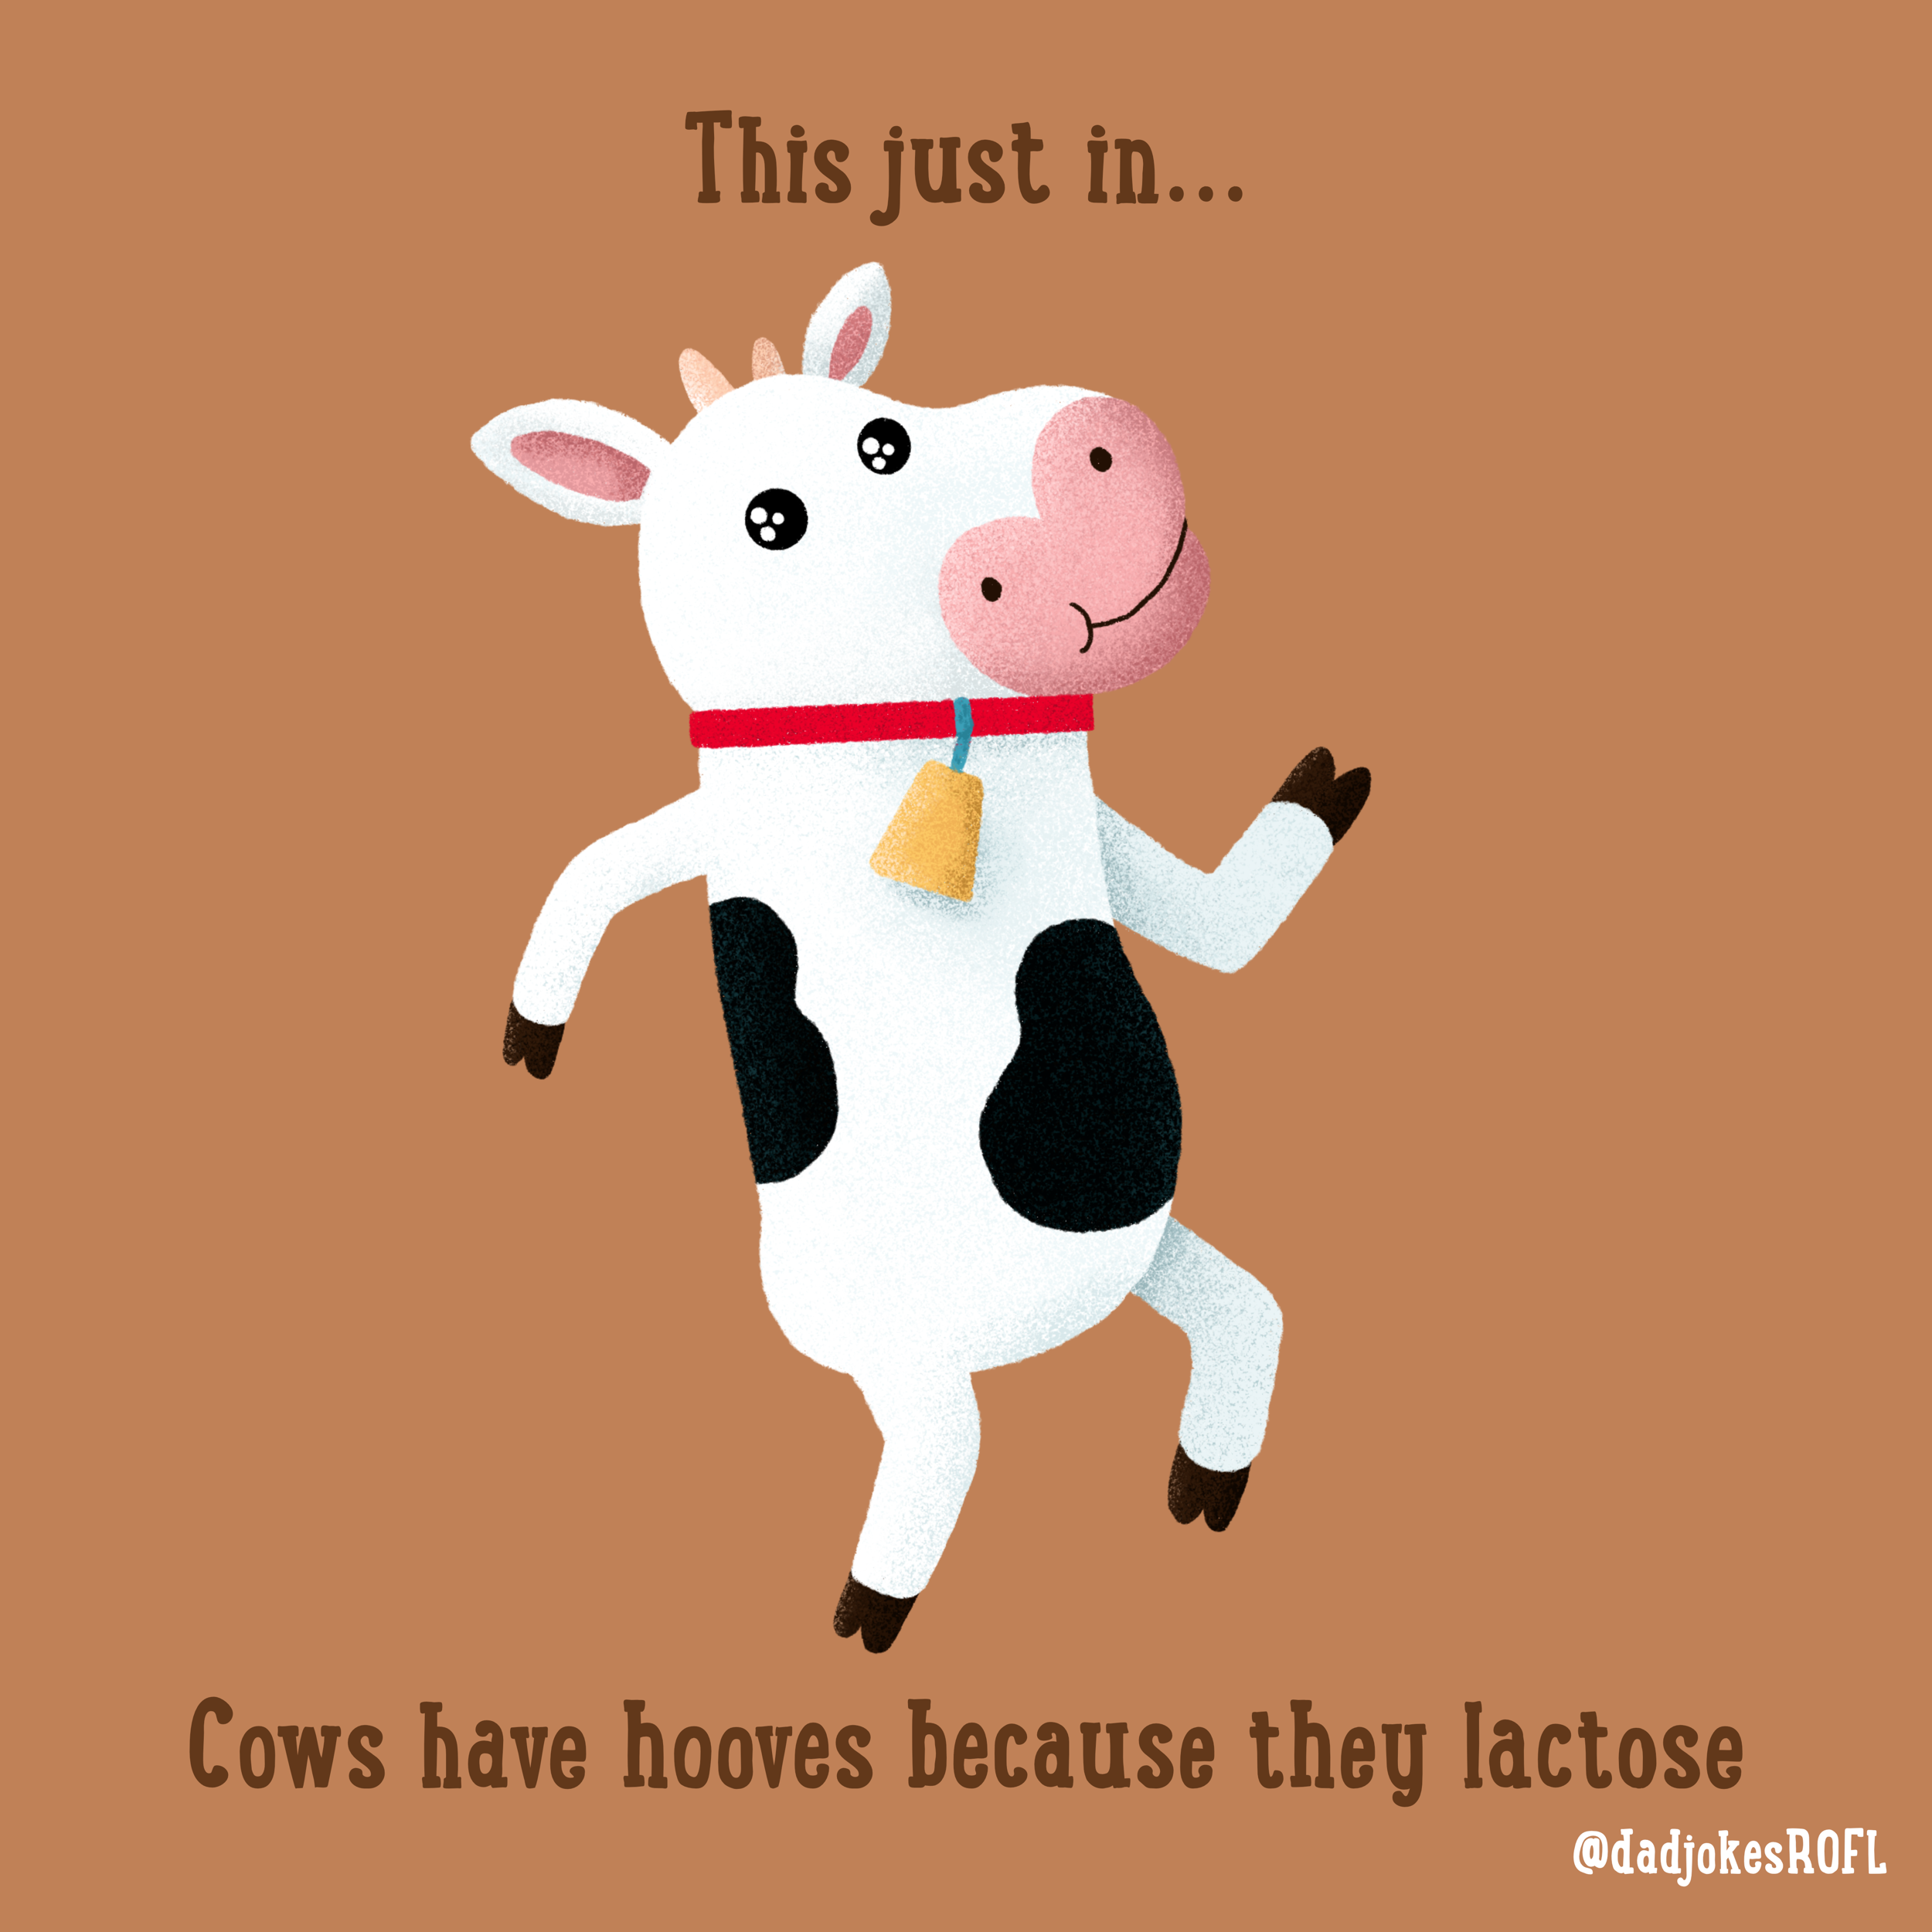 This just in... Cows have hooves because they lactose